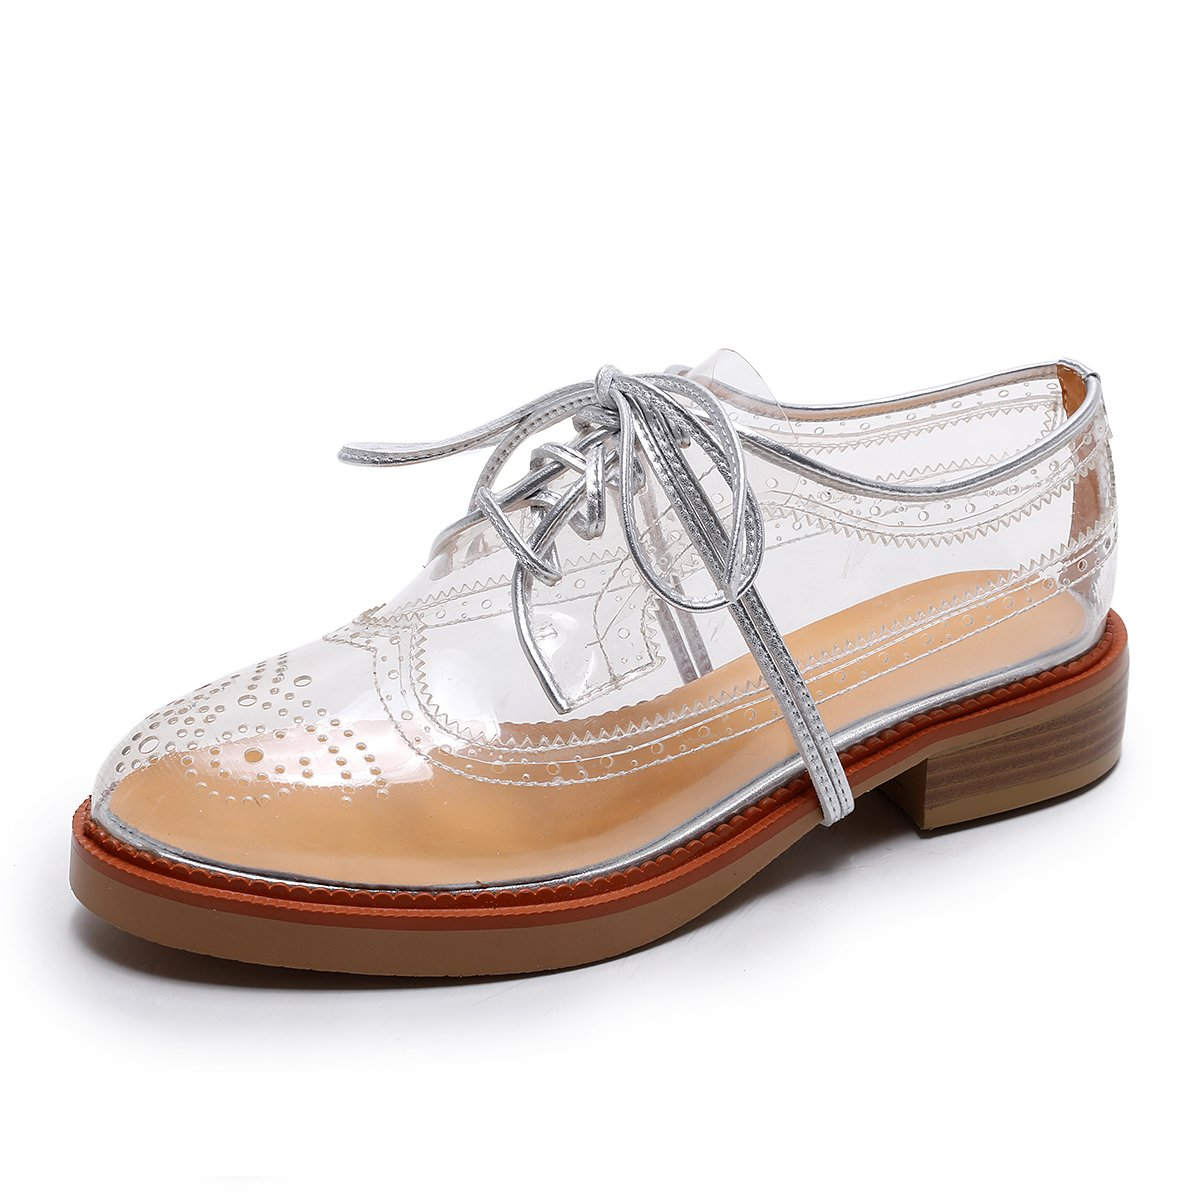 Bruno Bianci Women's Vegan Oxford Brogue Transparent Clear Shoes Perfect For Colourful Happy Socks (US 10)